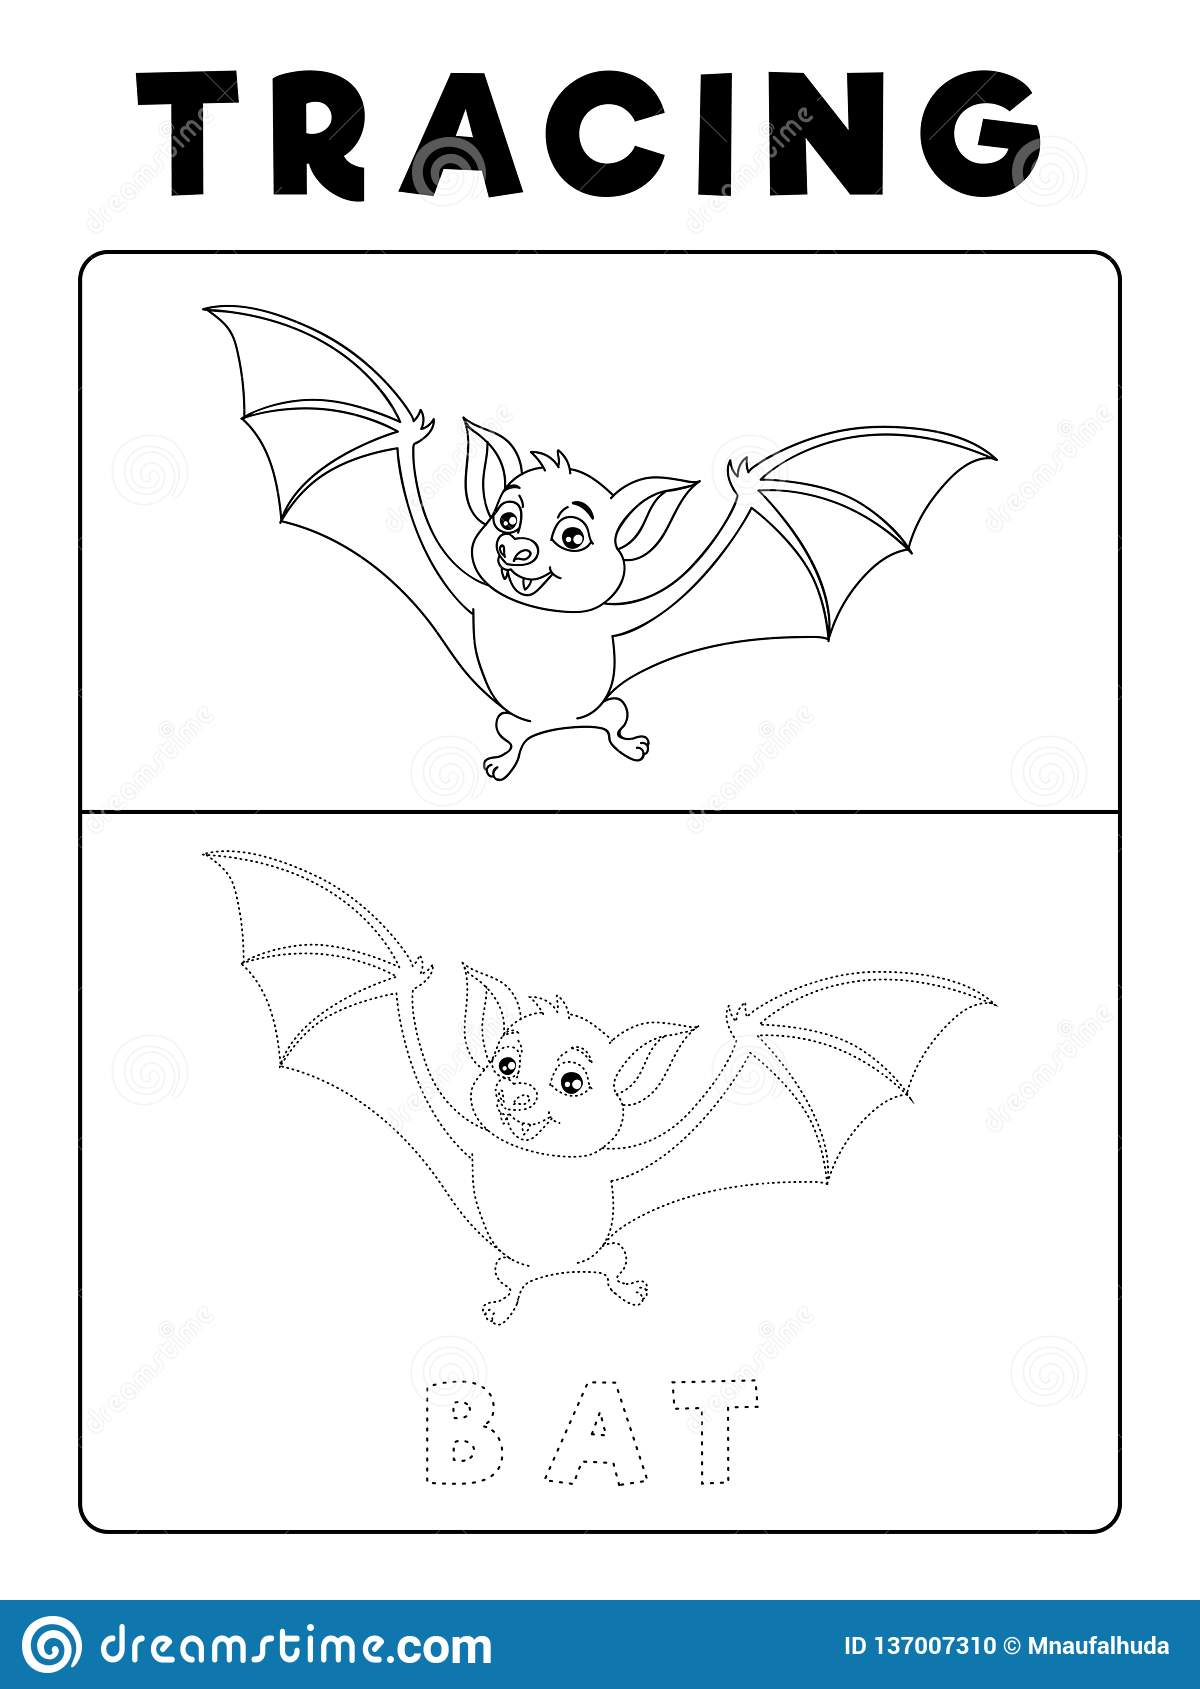 Funny Bat Tracing Book With Example Preschool Worksheet